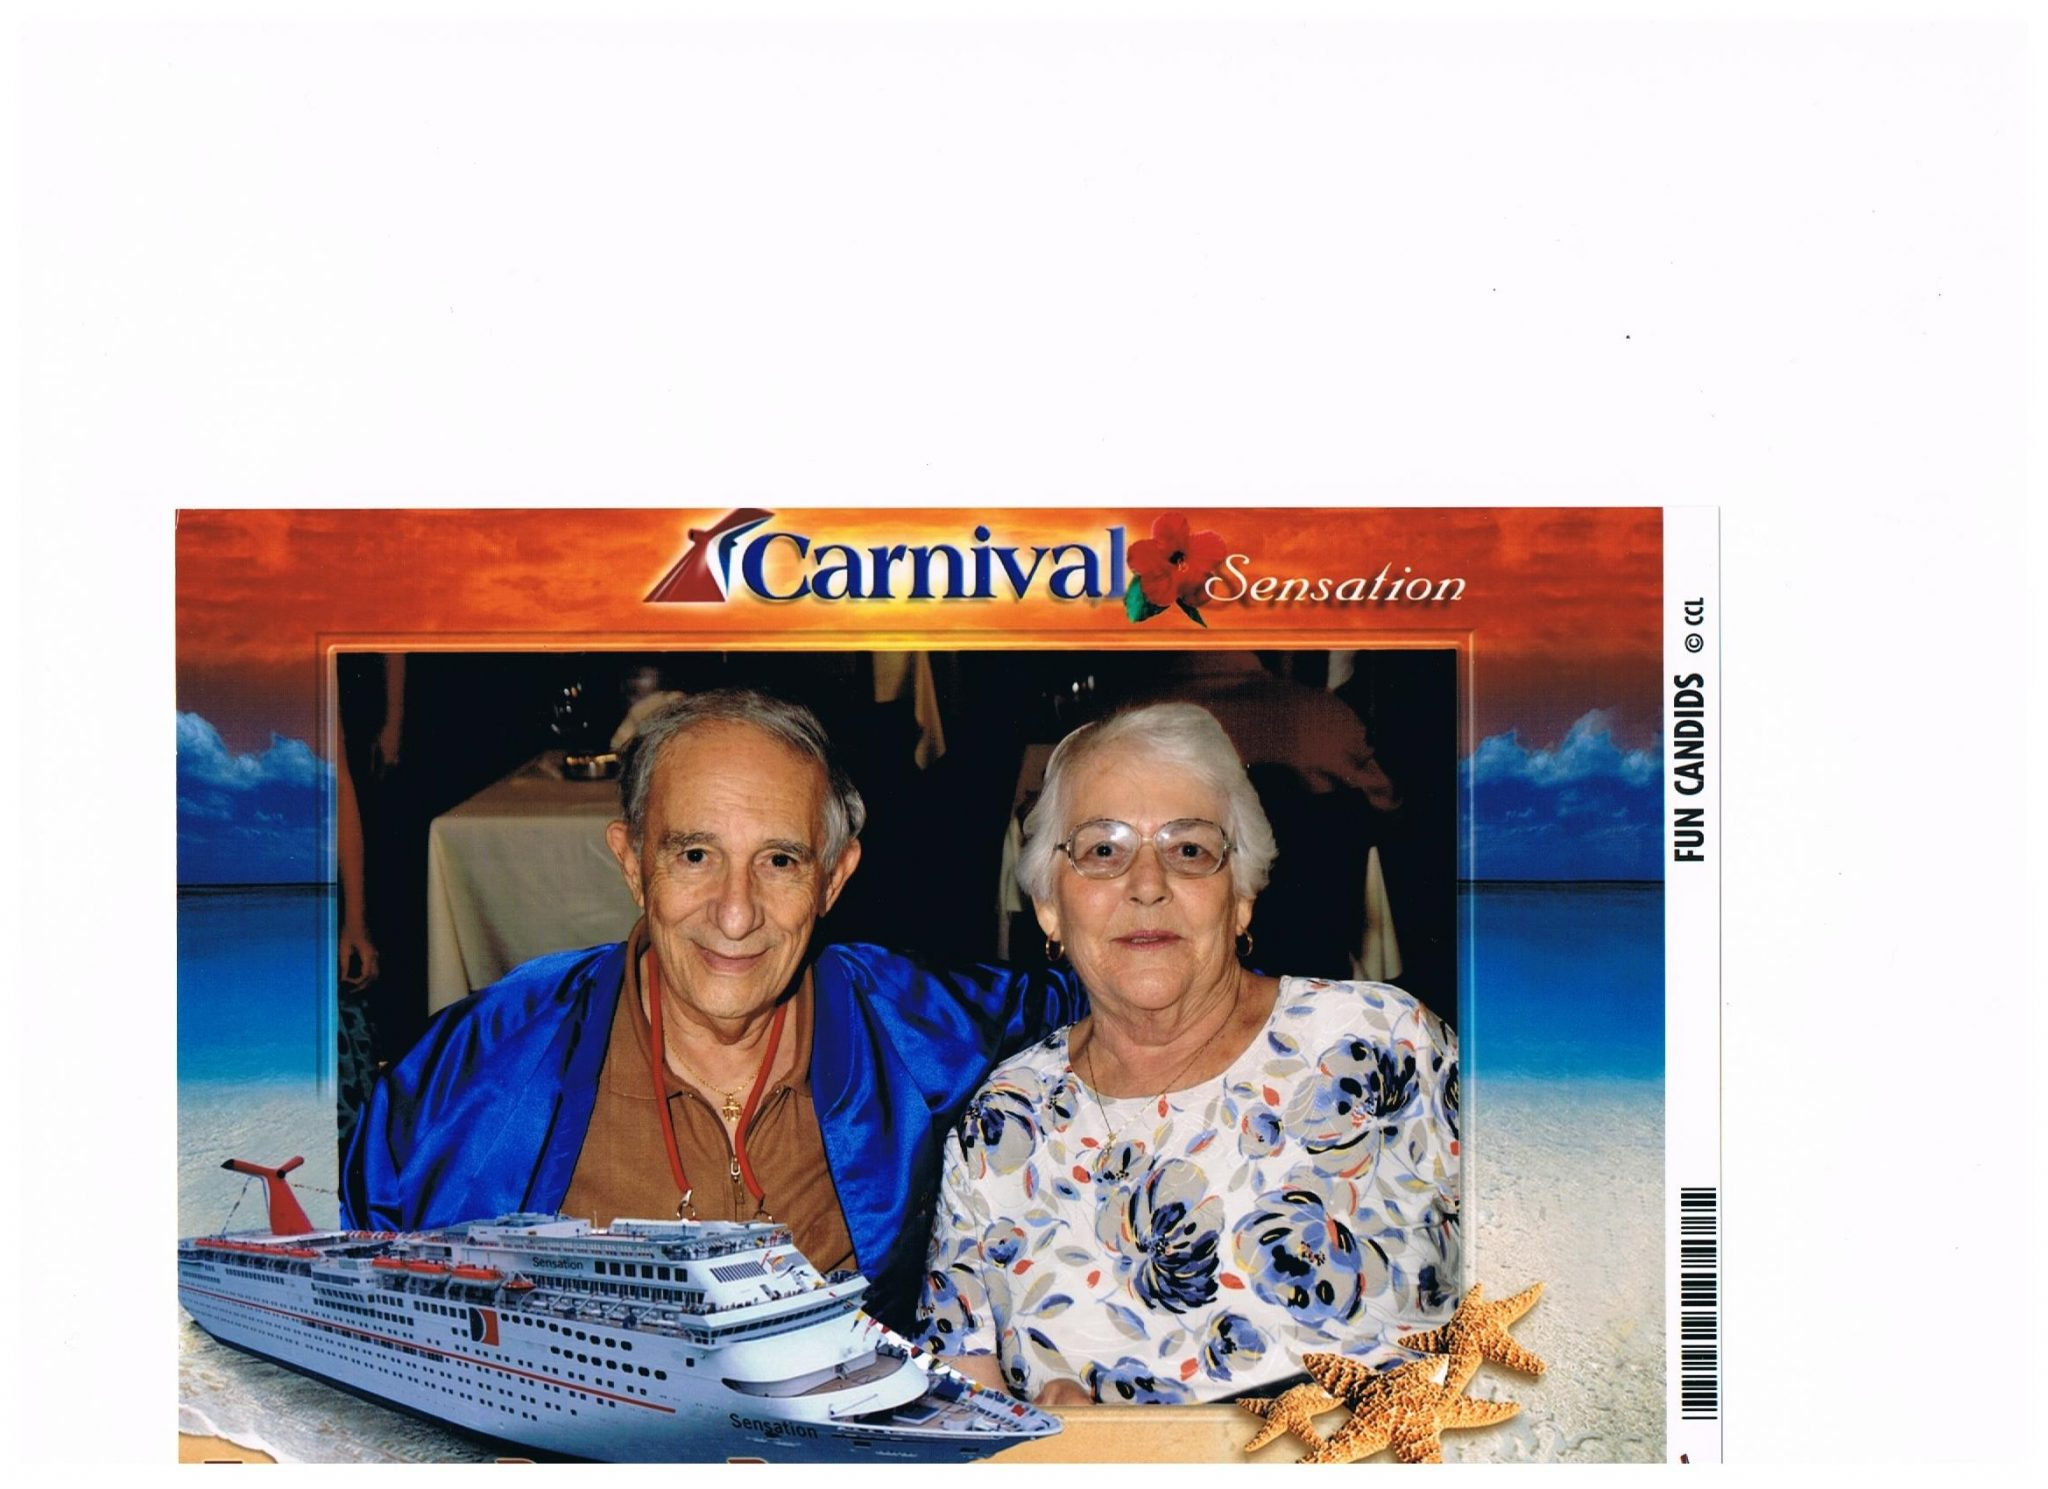 One of our many cruises. We had so much fun traveling around together.